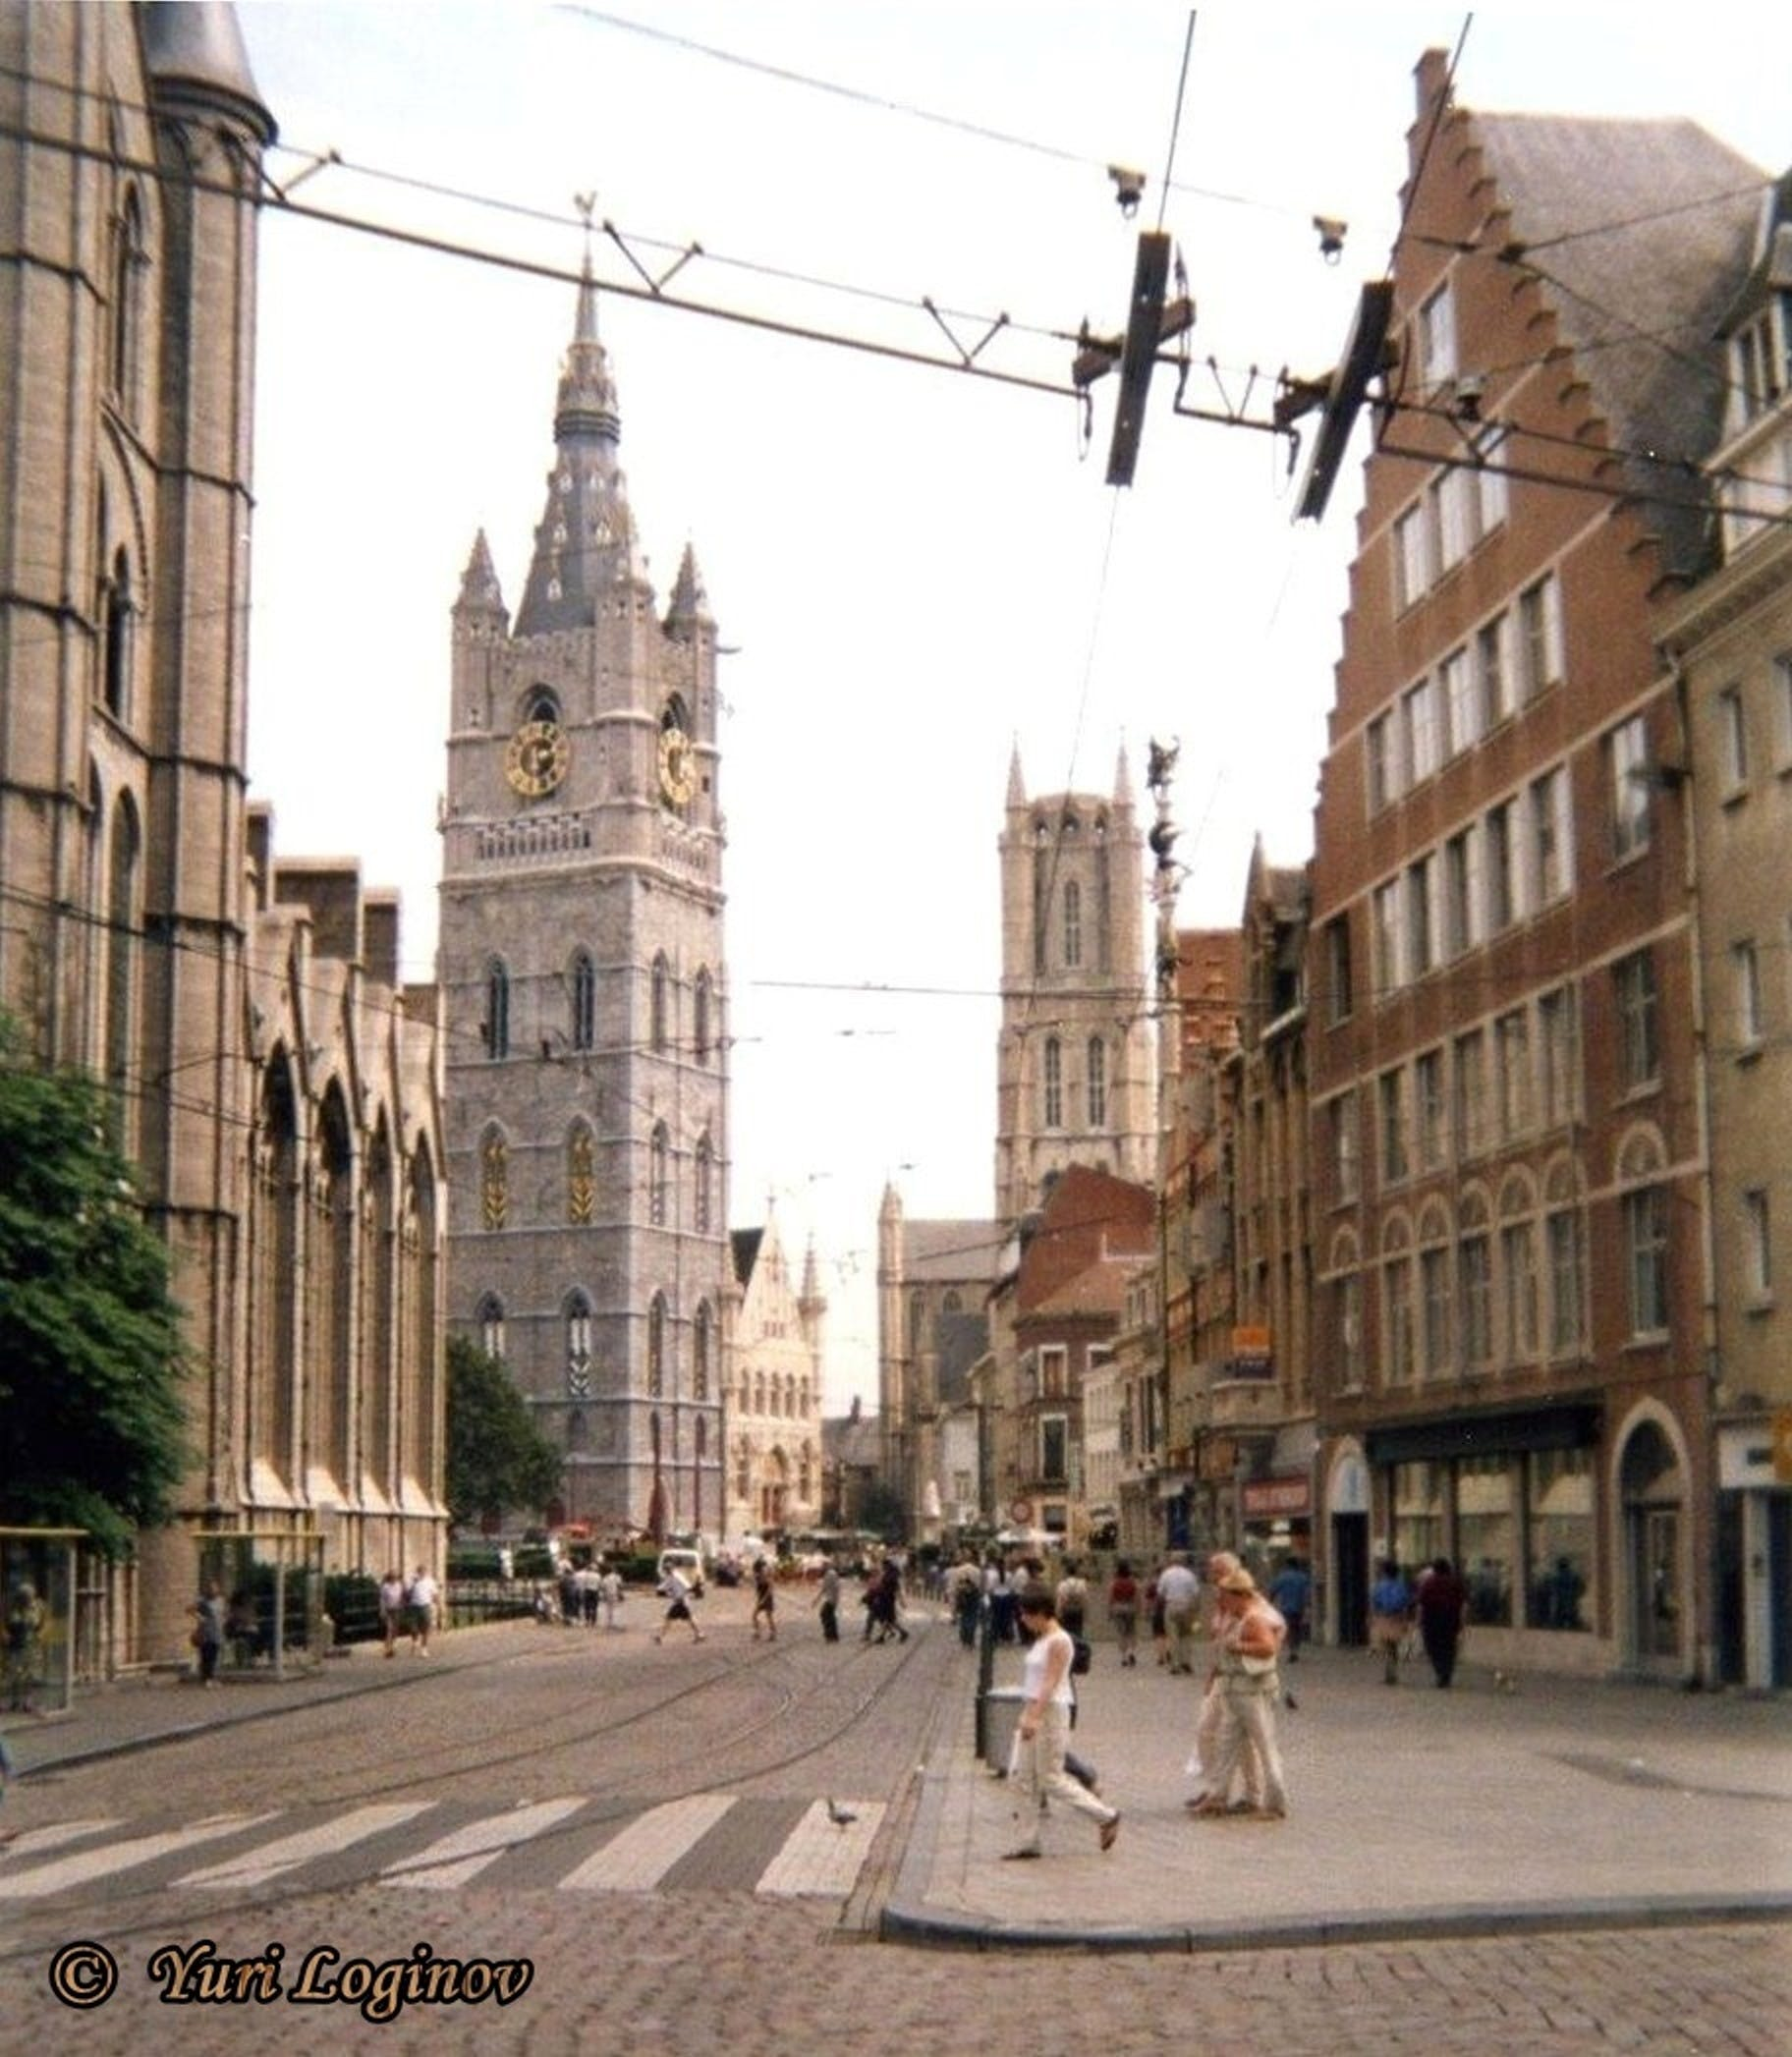 Free stock photo of Belgium, ghent, Gent, België